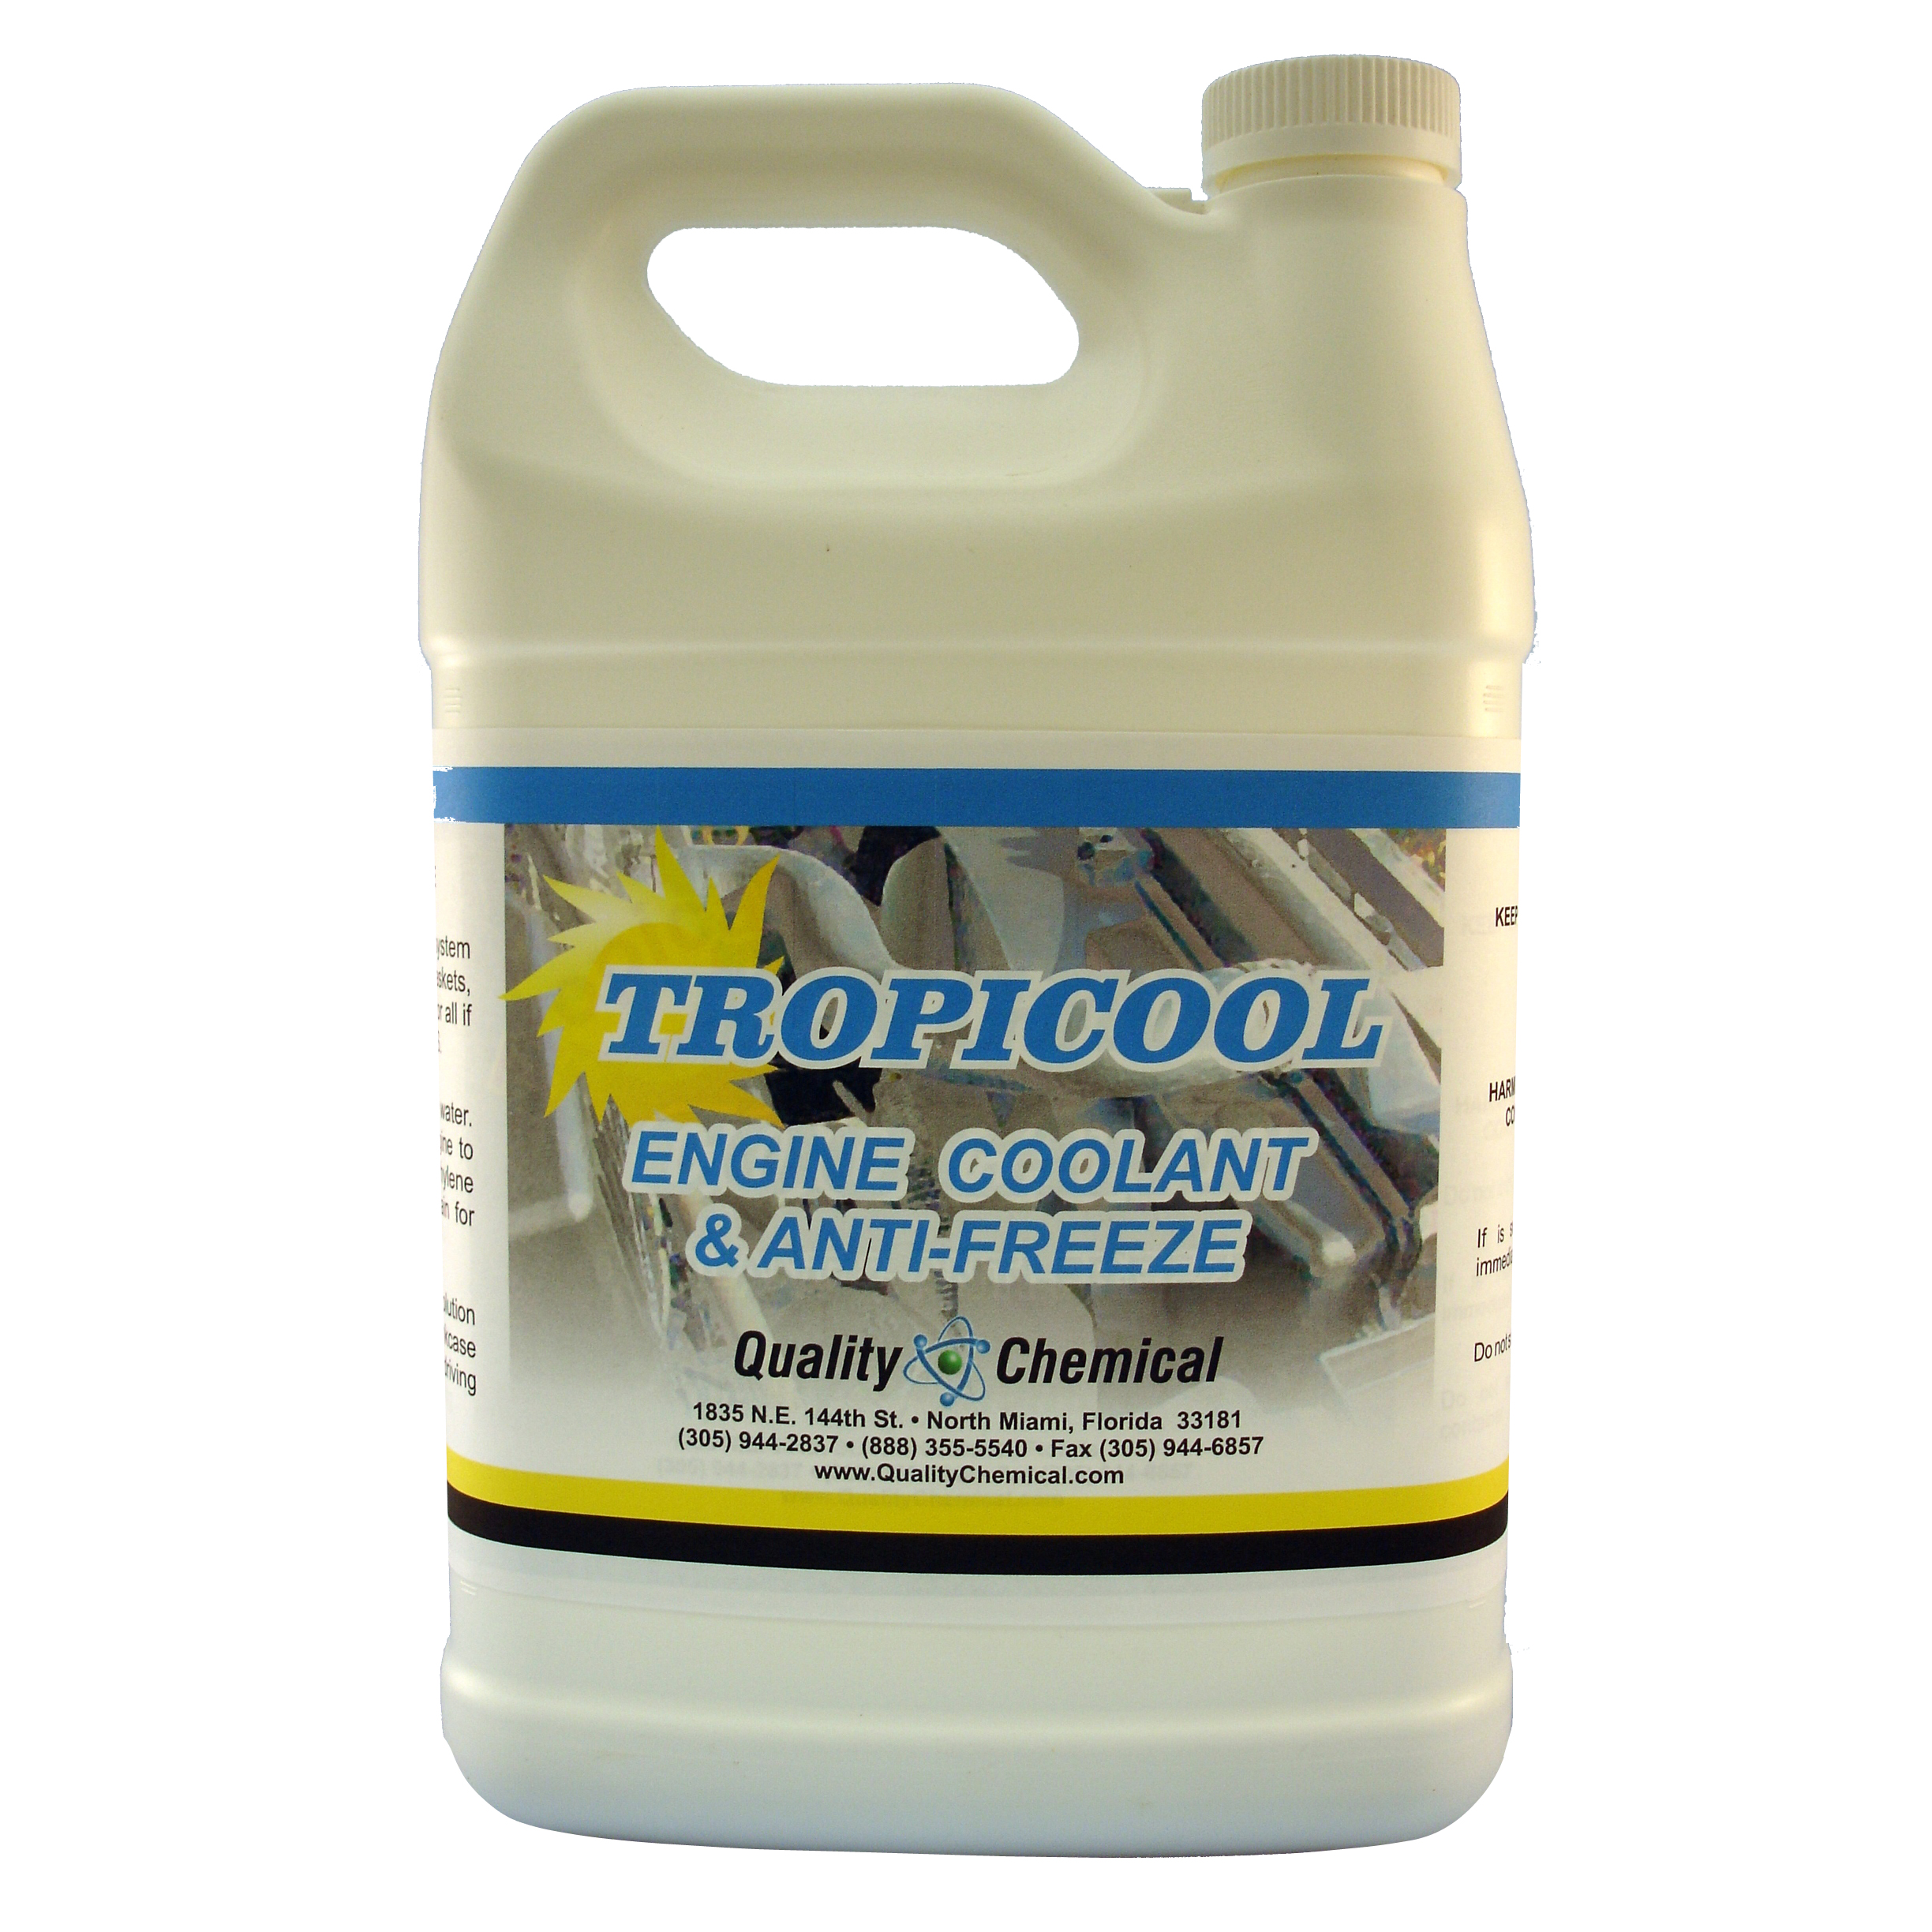 Tropicool Engine Coolant & Antifreeze